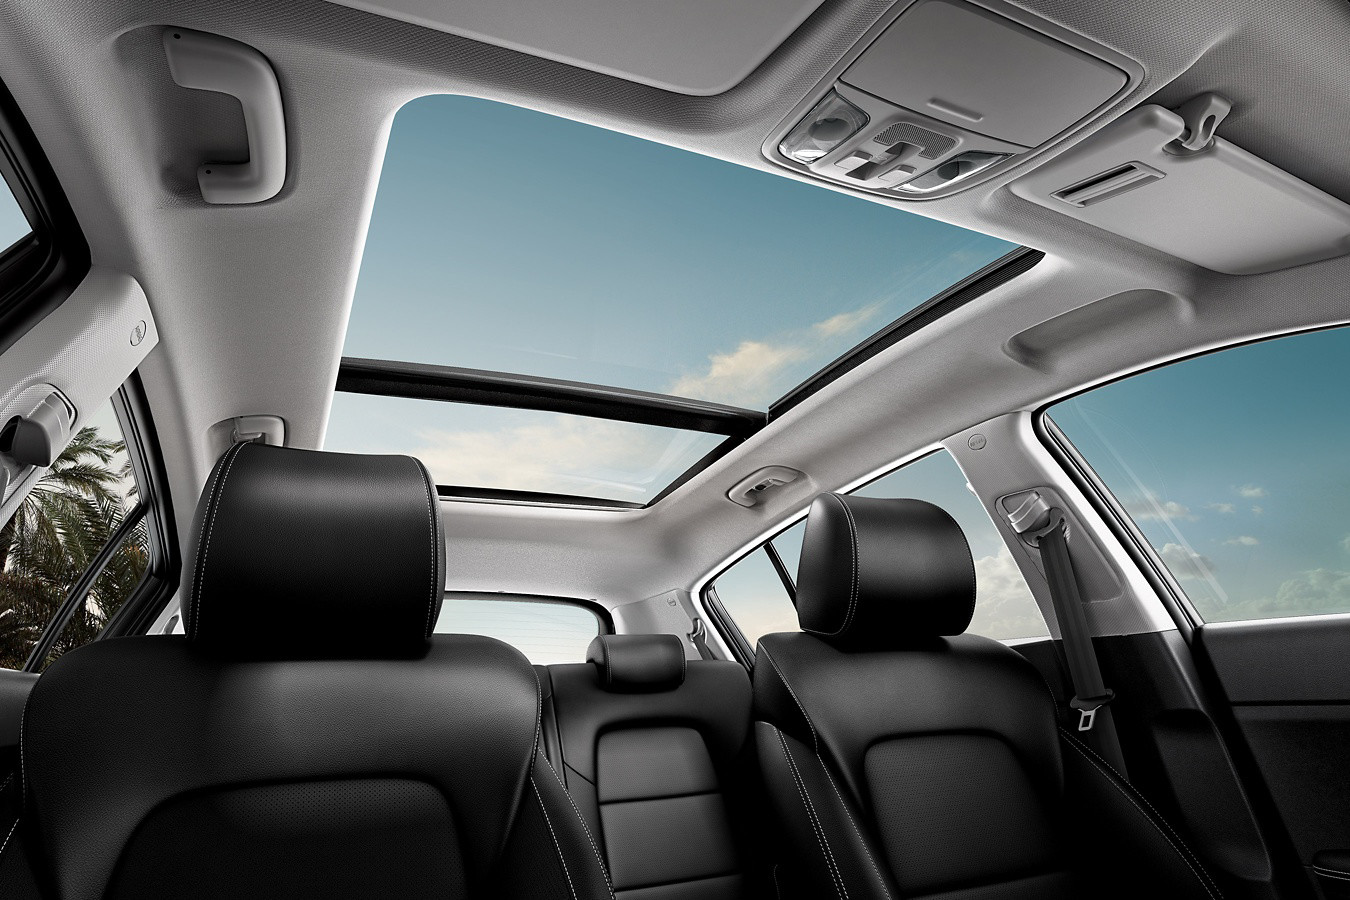 2020 Kia Sportage Interior Seating and Sunroof